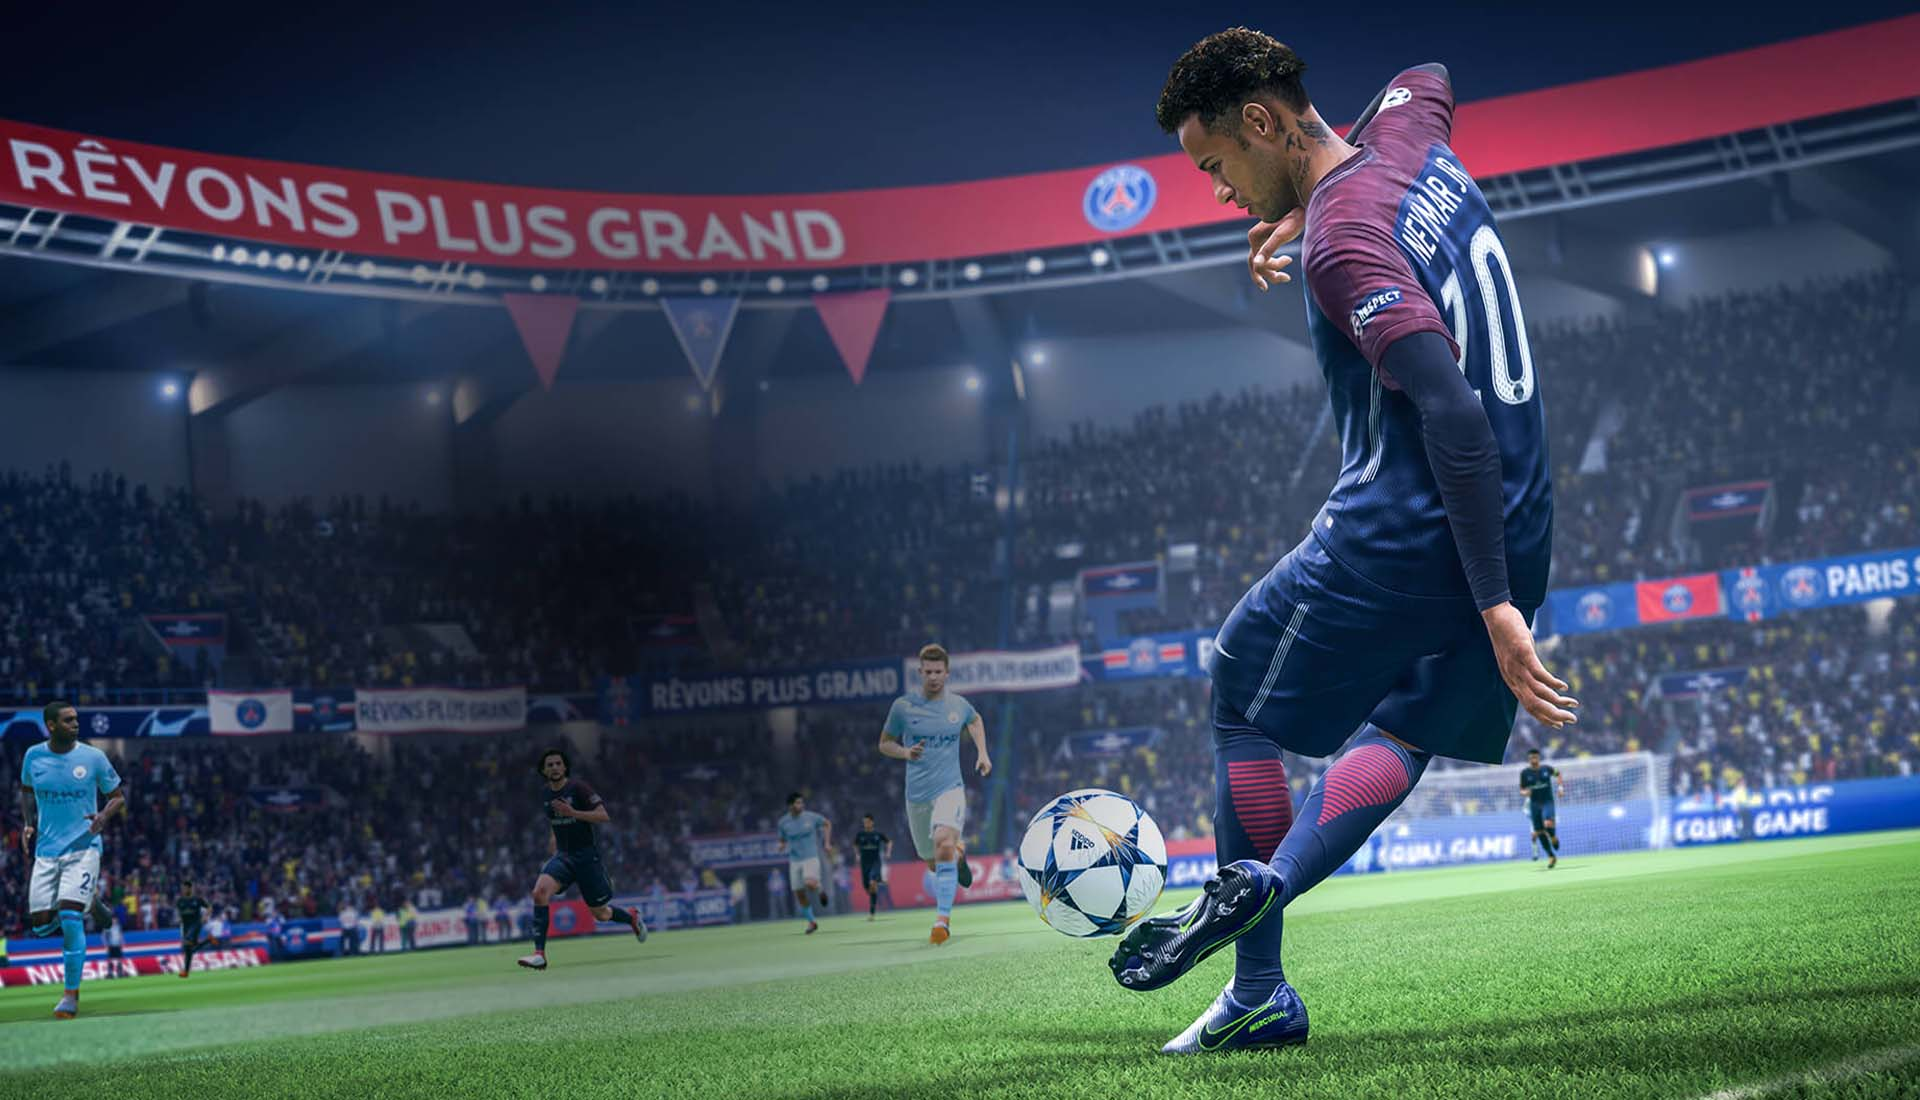 1-fifa-19-champions-league-trailer.jpg